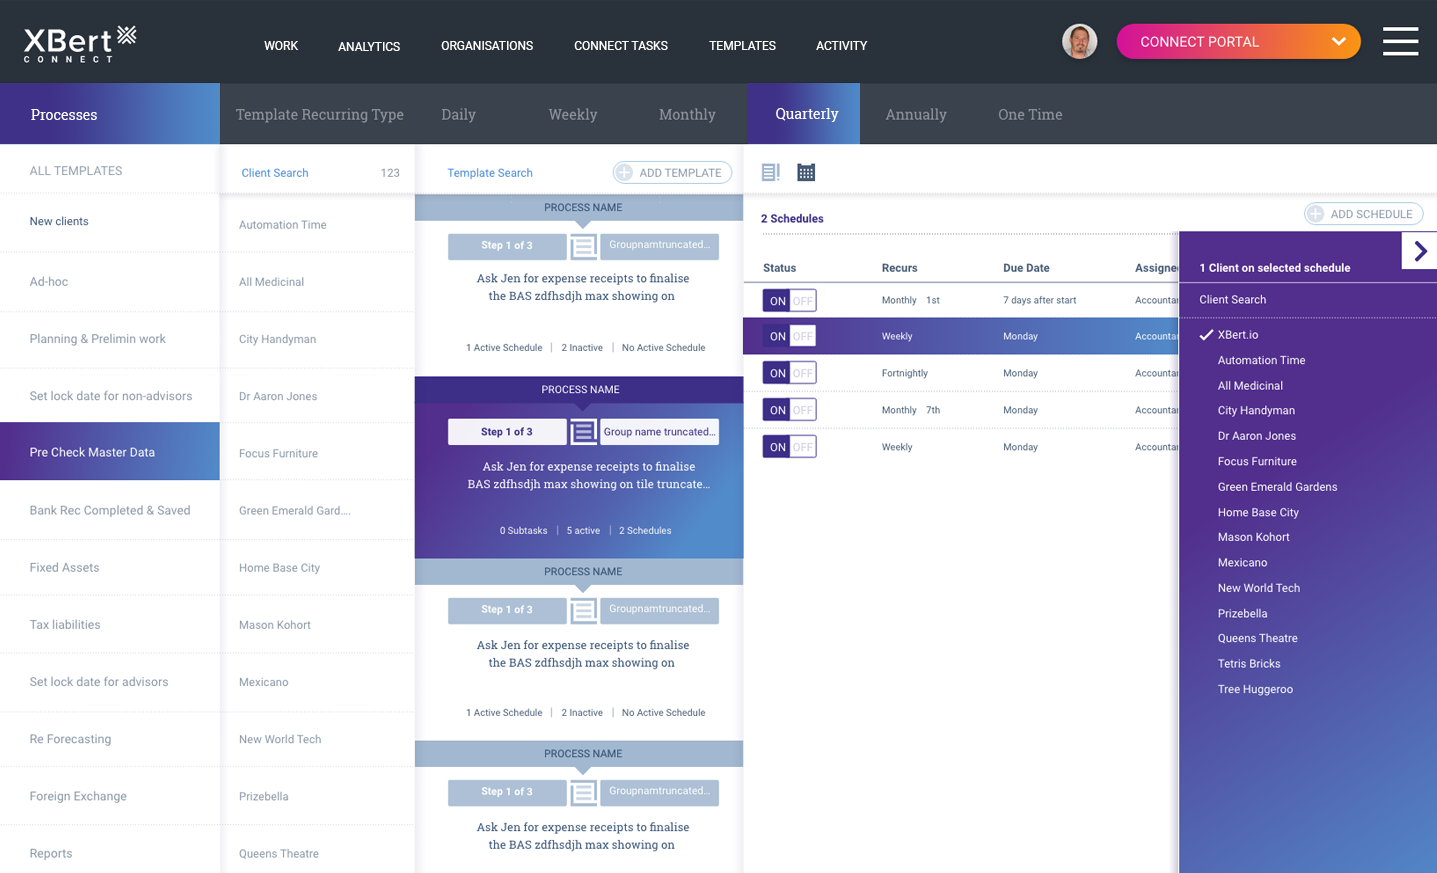 XBert custom templates and client scheduling